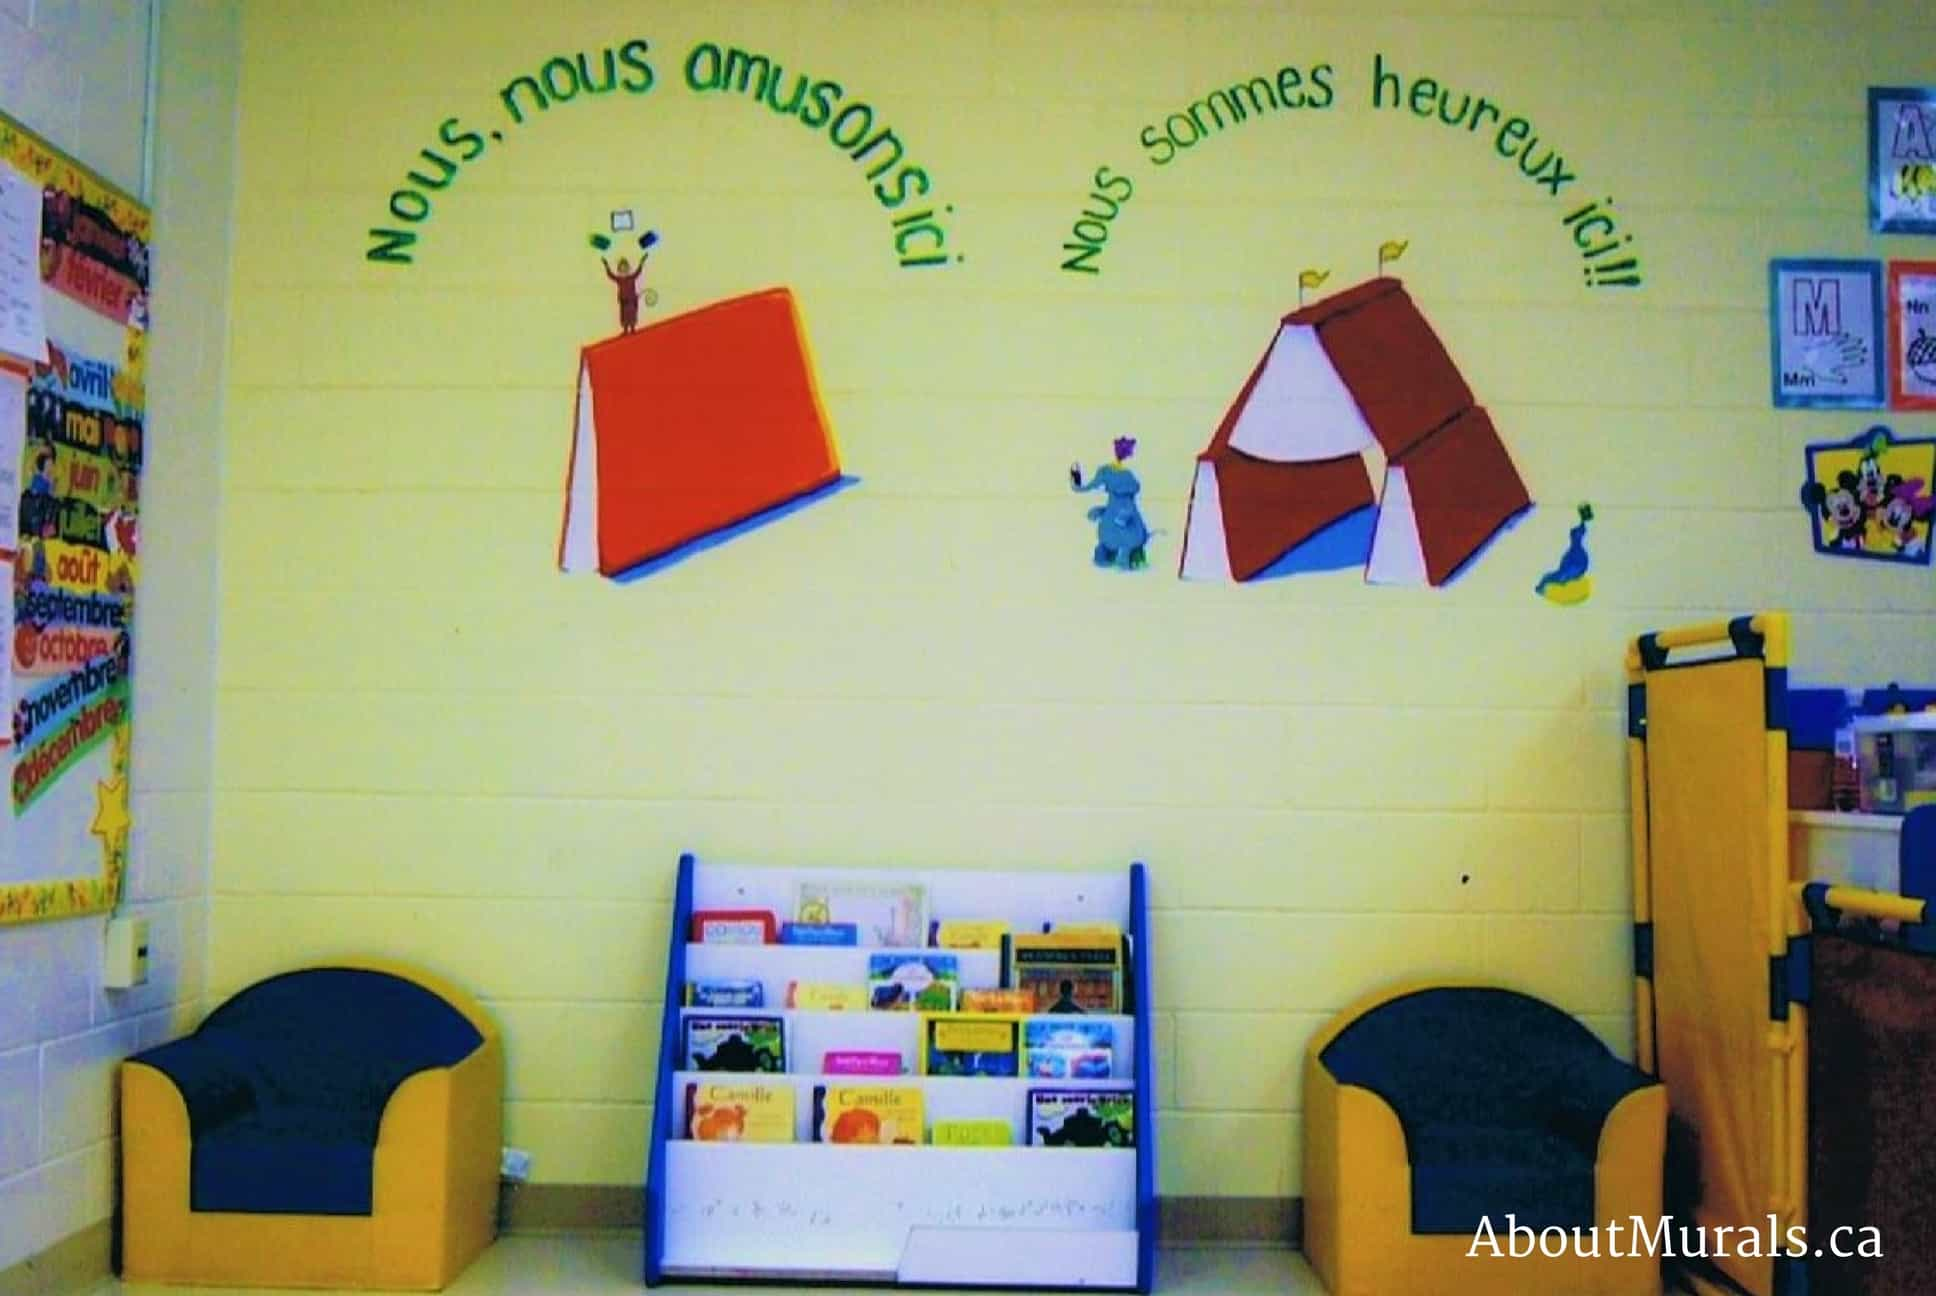 A kids wall mural featuring an elephant, seal and monkeys performing at a book themed circus